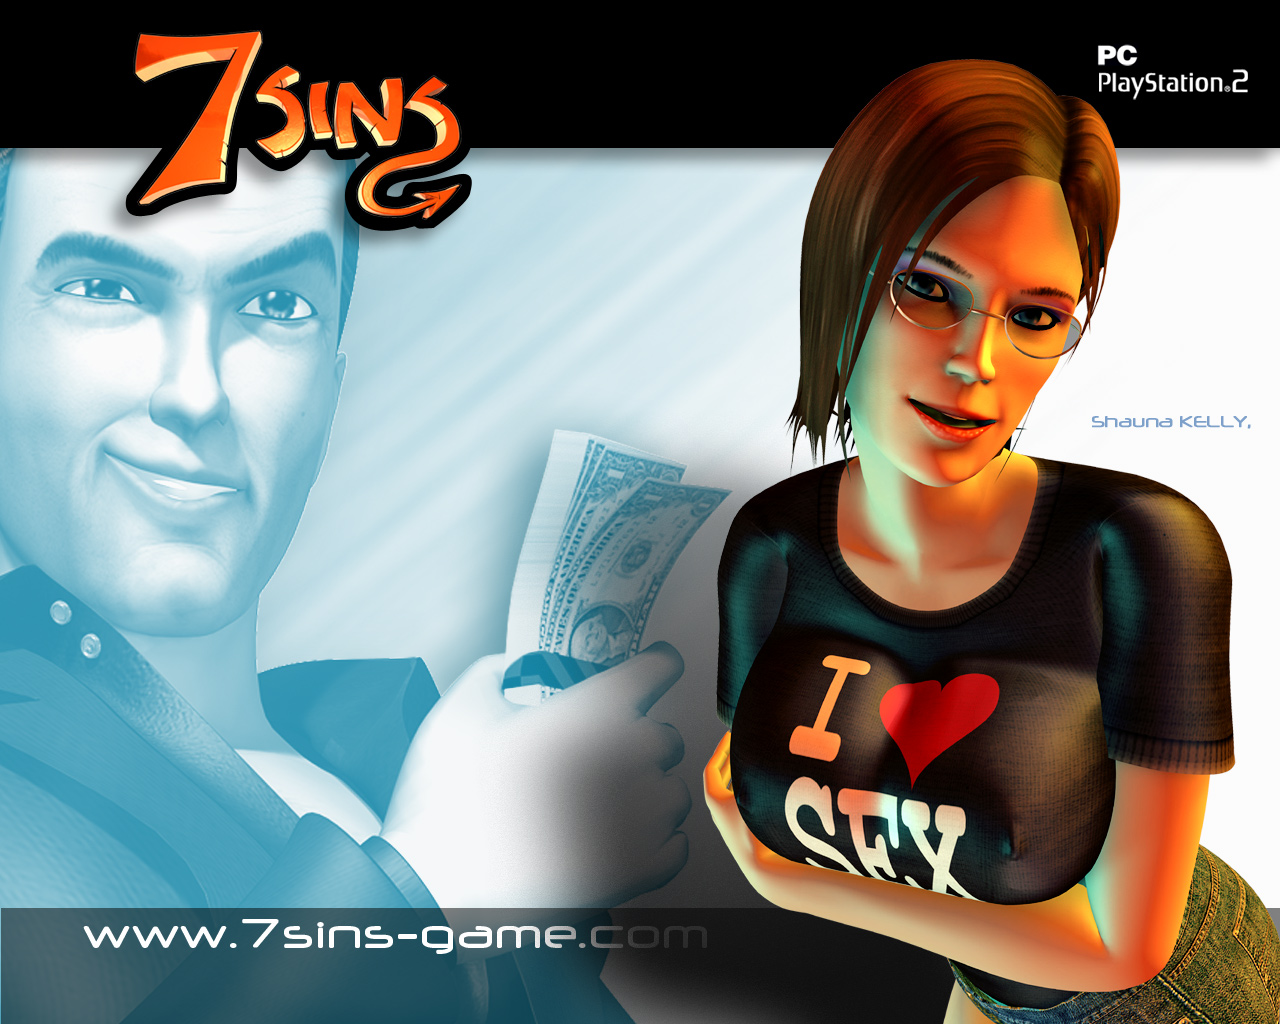 7 Sins 2005 Promotional Art Mobygames